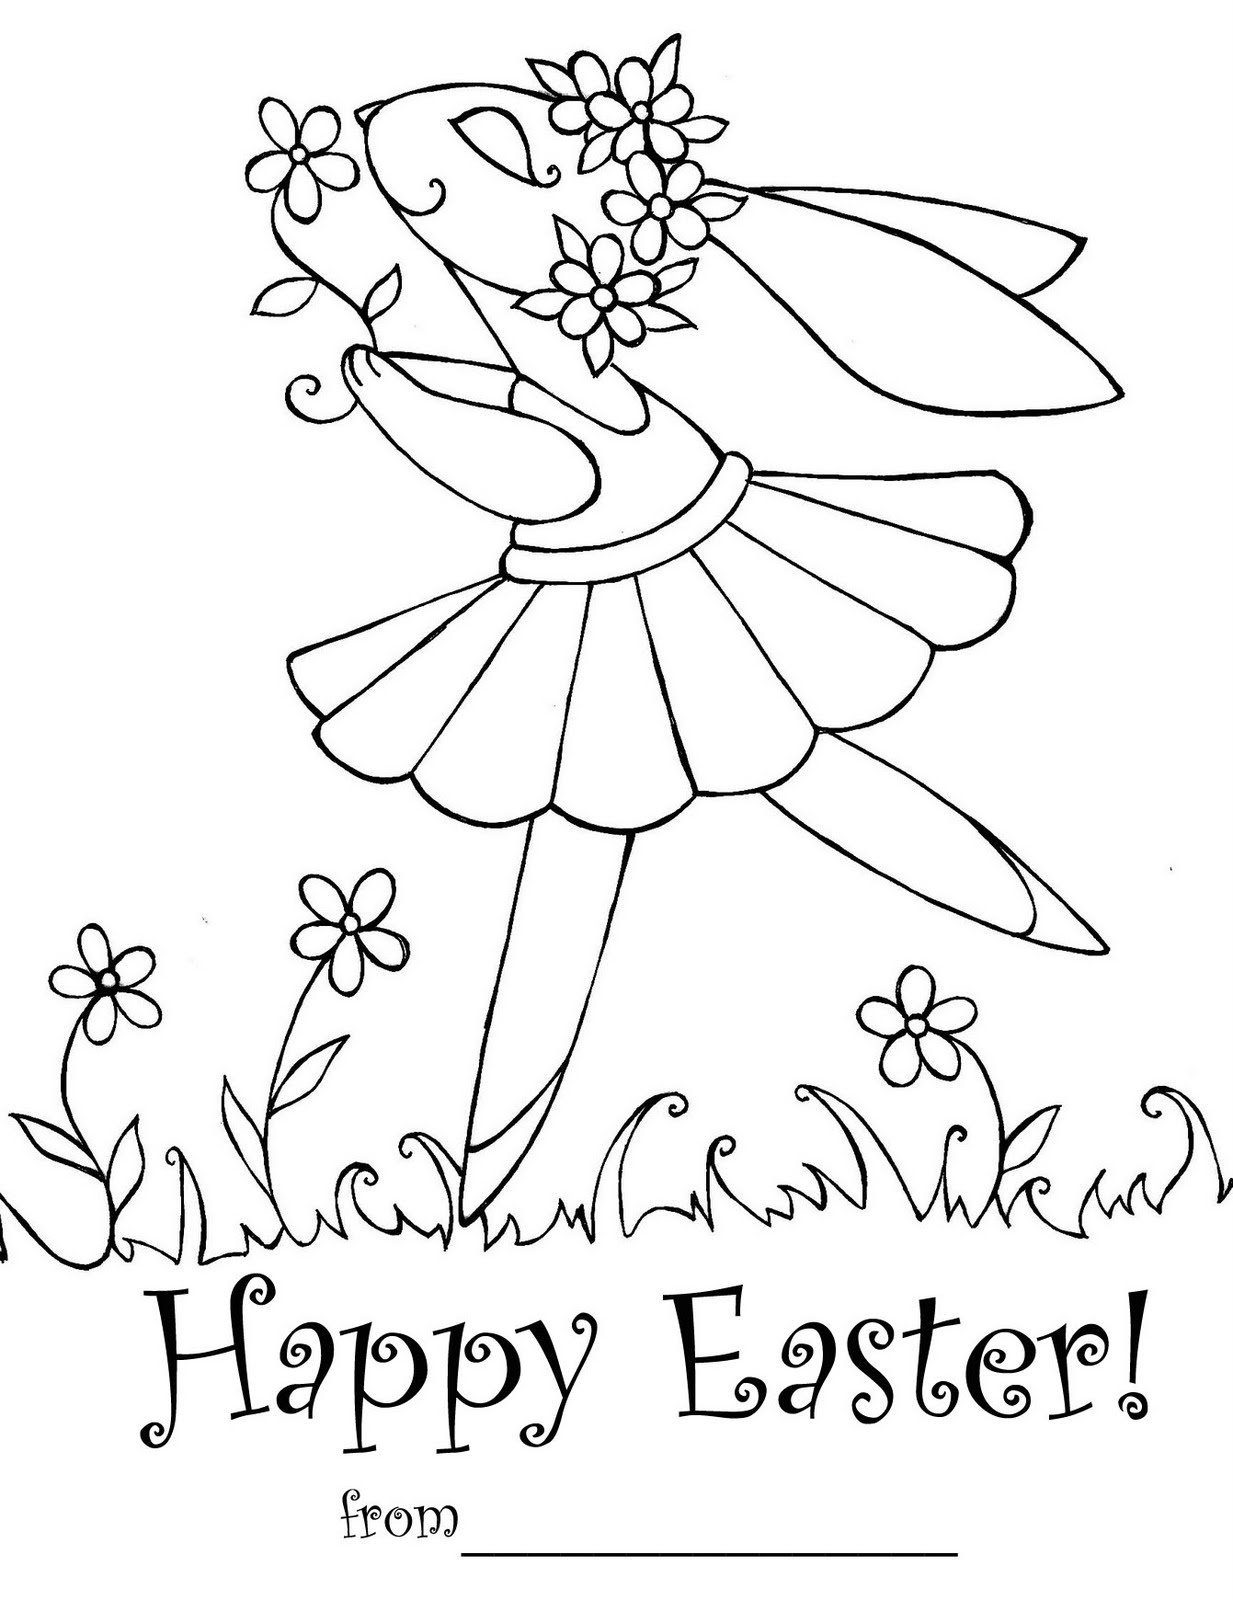 easter cards colouring happy easter coloring pages best coloring pages for kids cards easter colouring